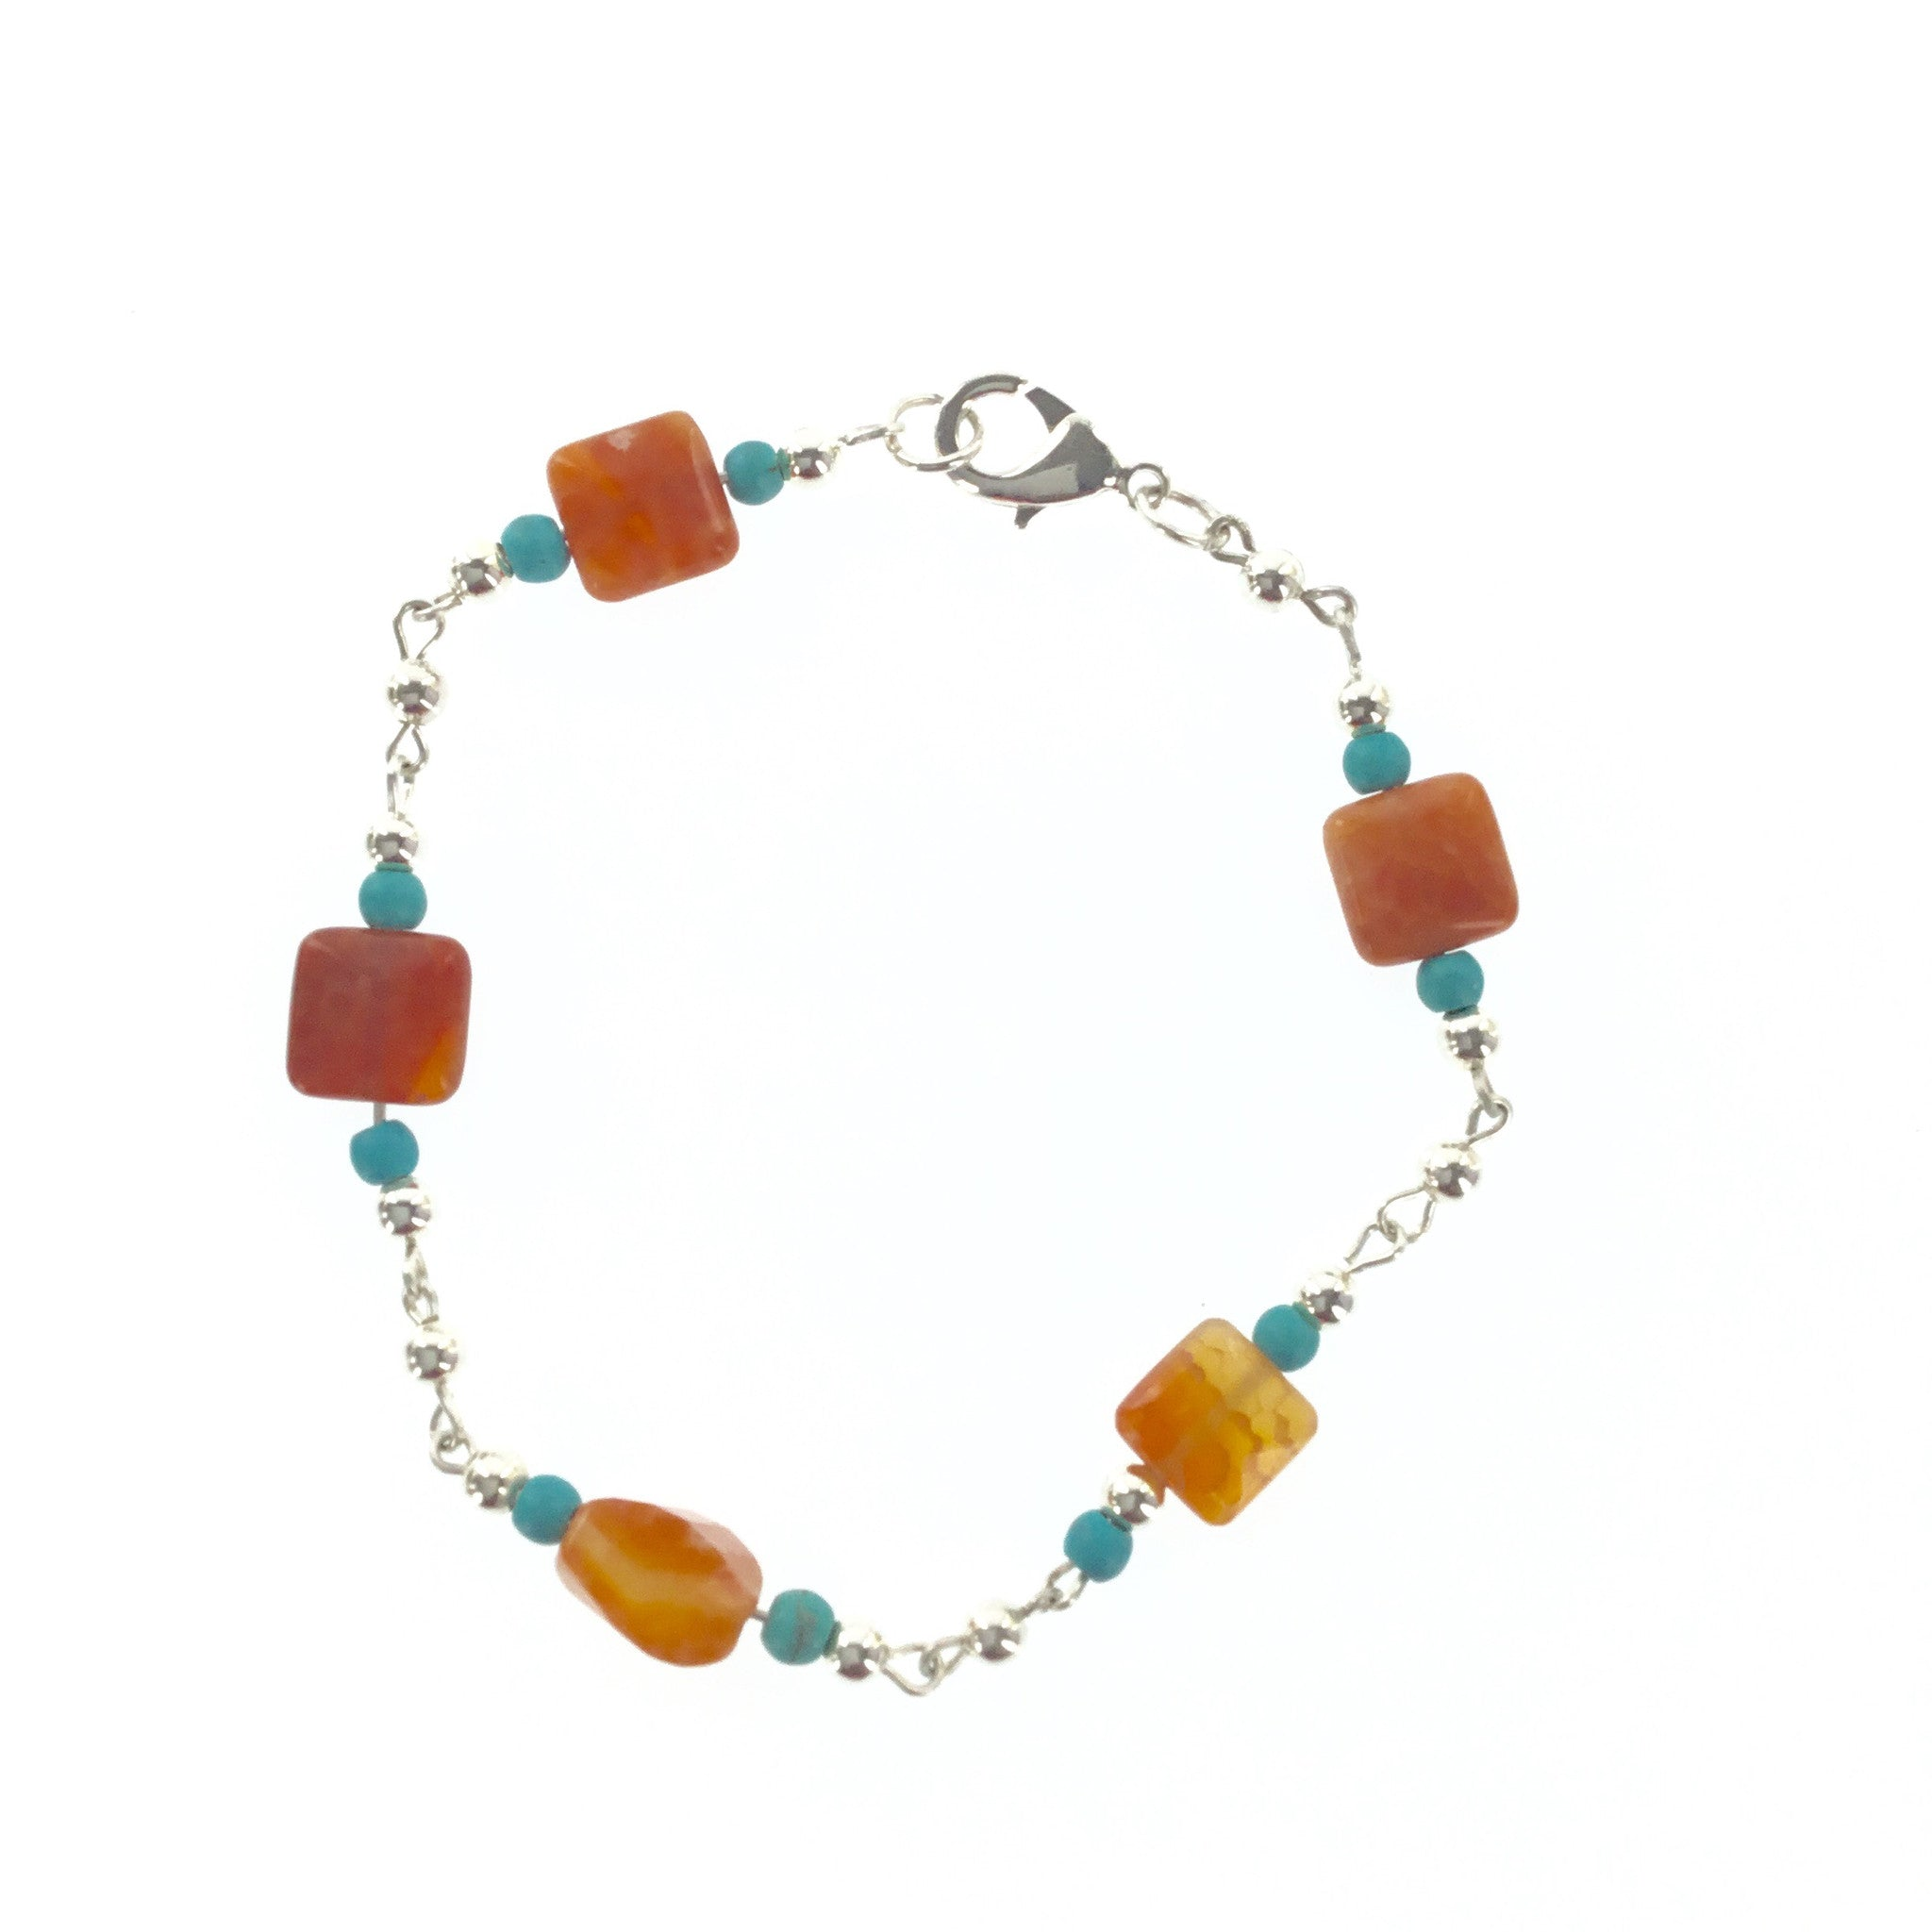 Fire Red Agate and Turquoise Blue Bracelet - Real Chic Boutique  - 1